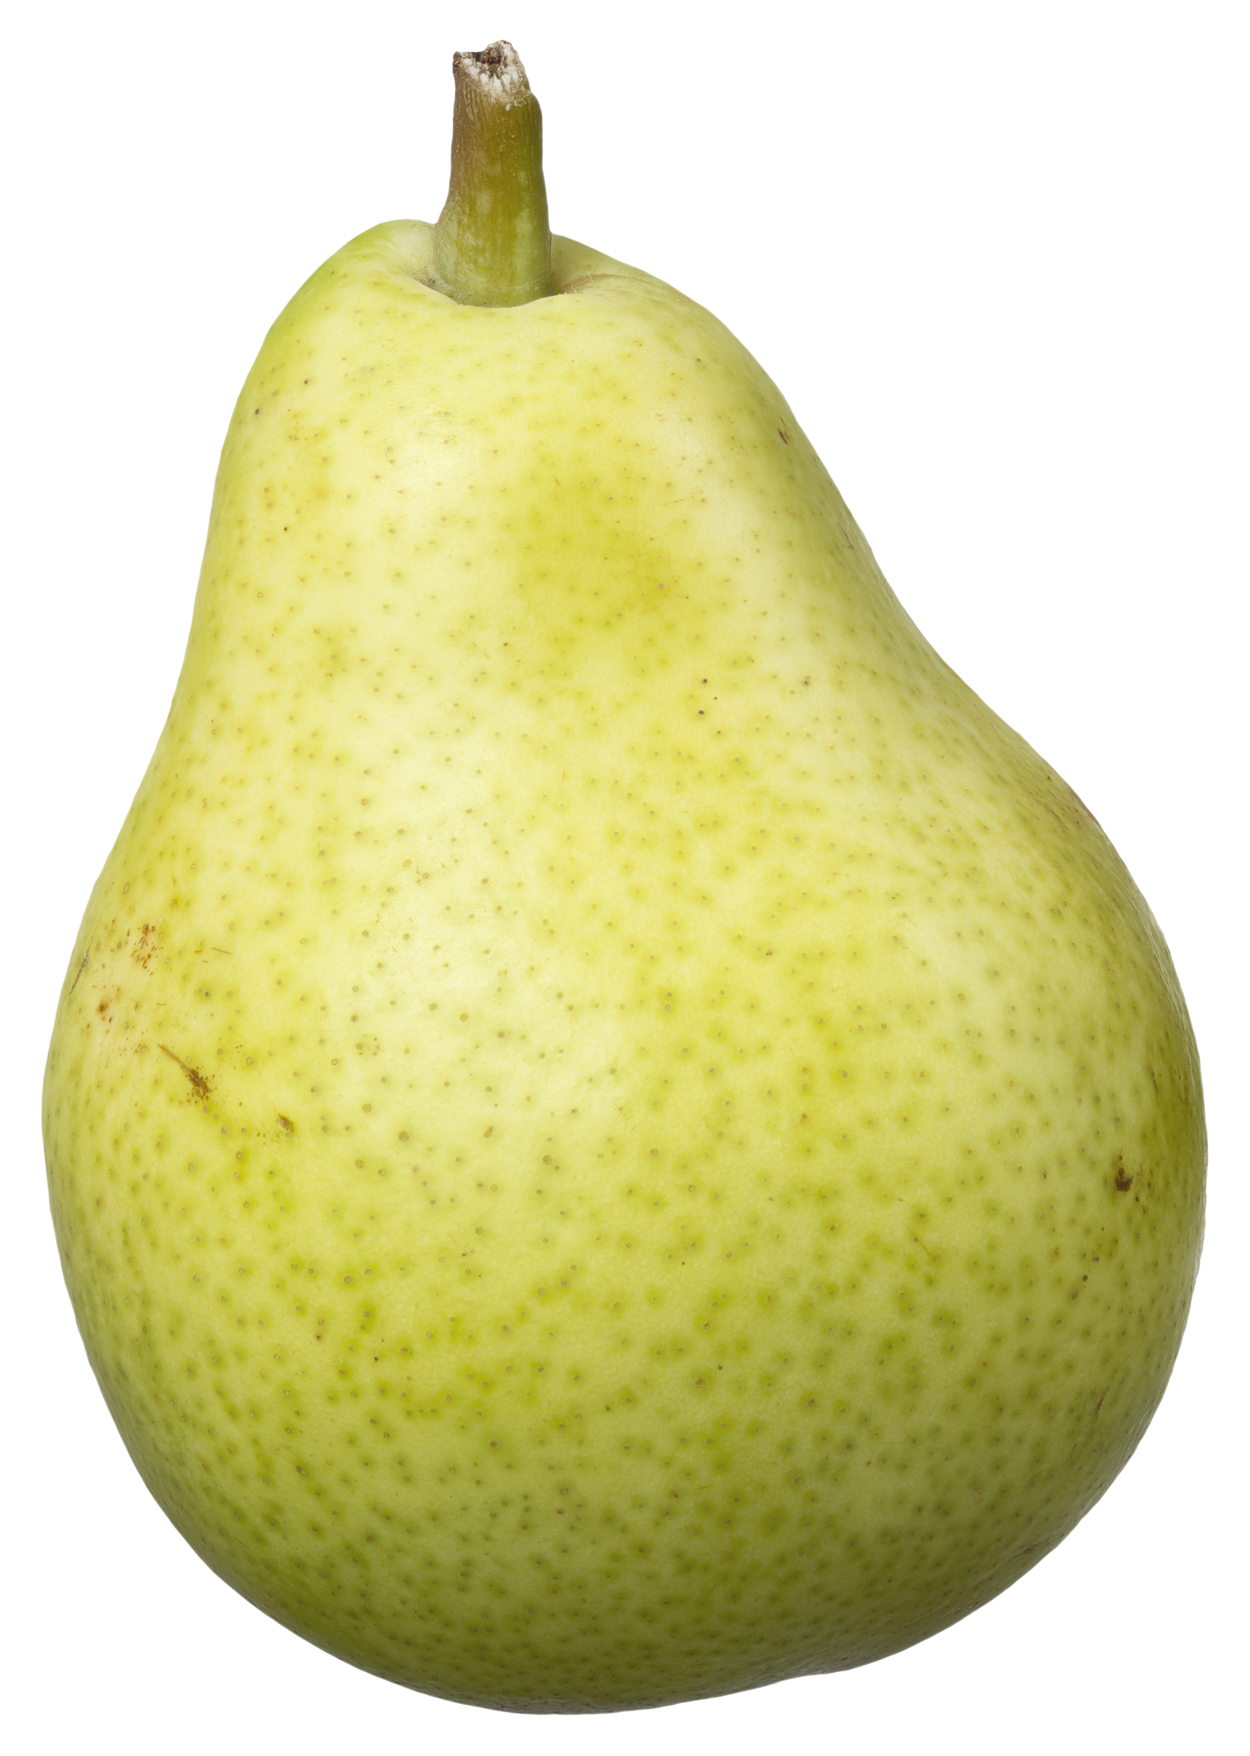 Pear Fruits PNG Image - PurePNG | Free transparent CC0 PNG ...